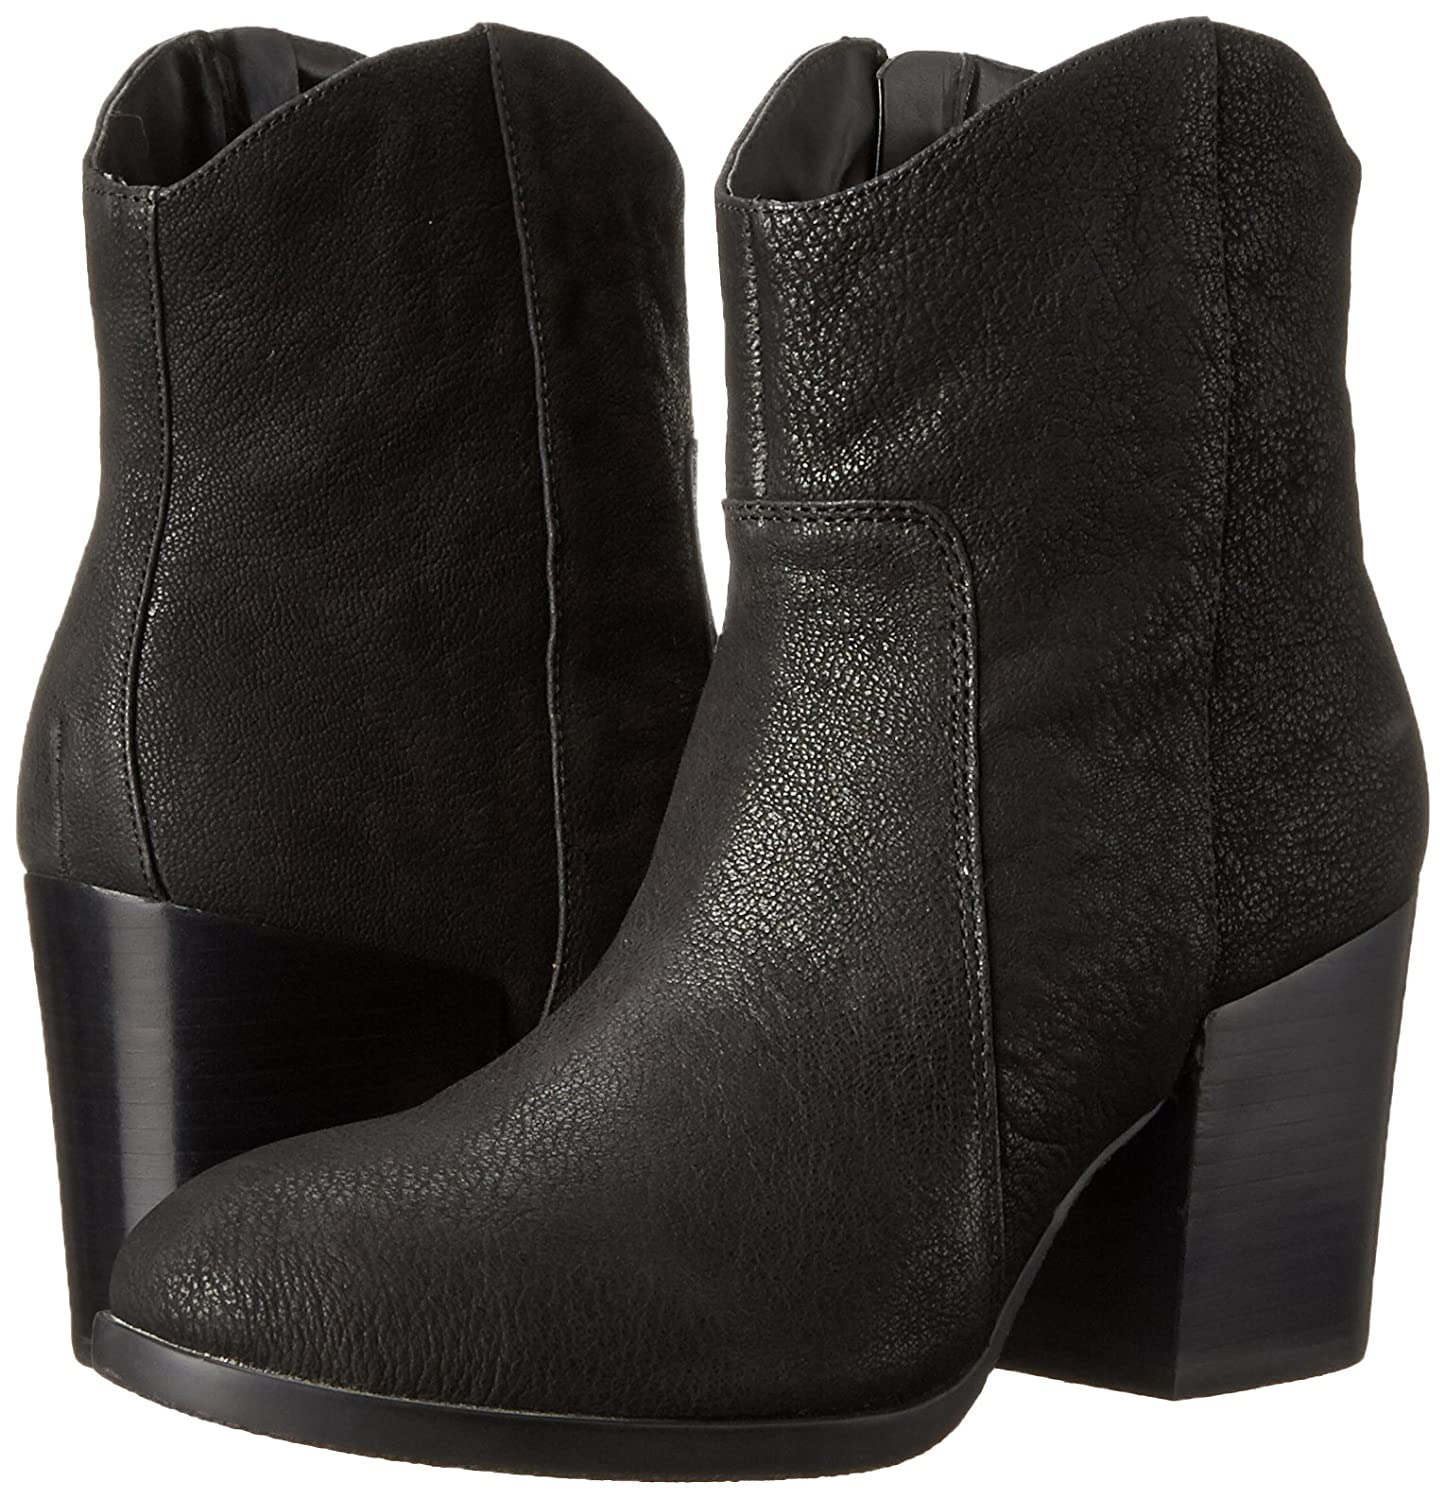 Nine West Women's Rubble Leather Boot B011EHKUHU 8.5 B(M) US|Black